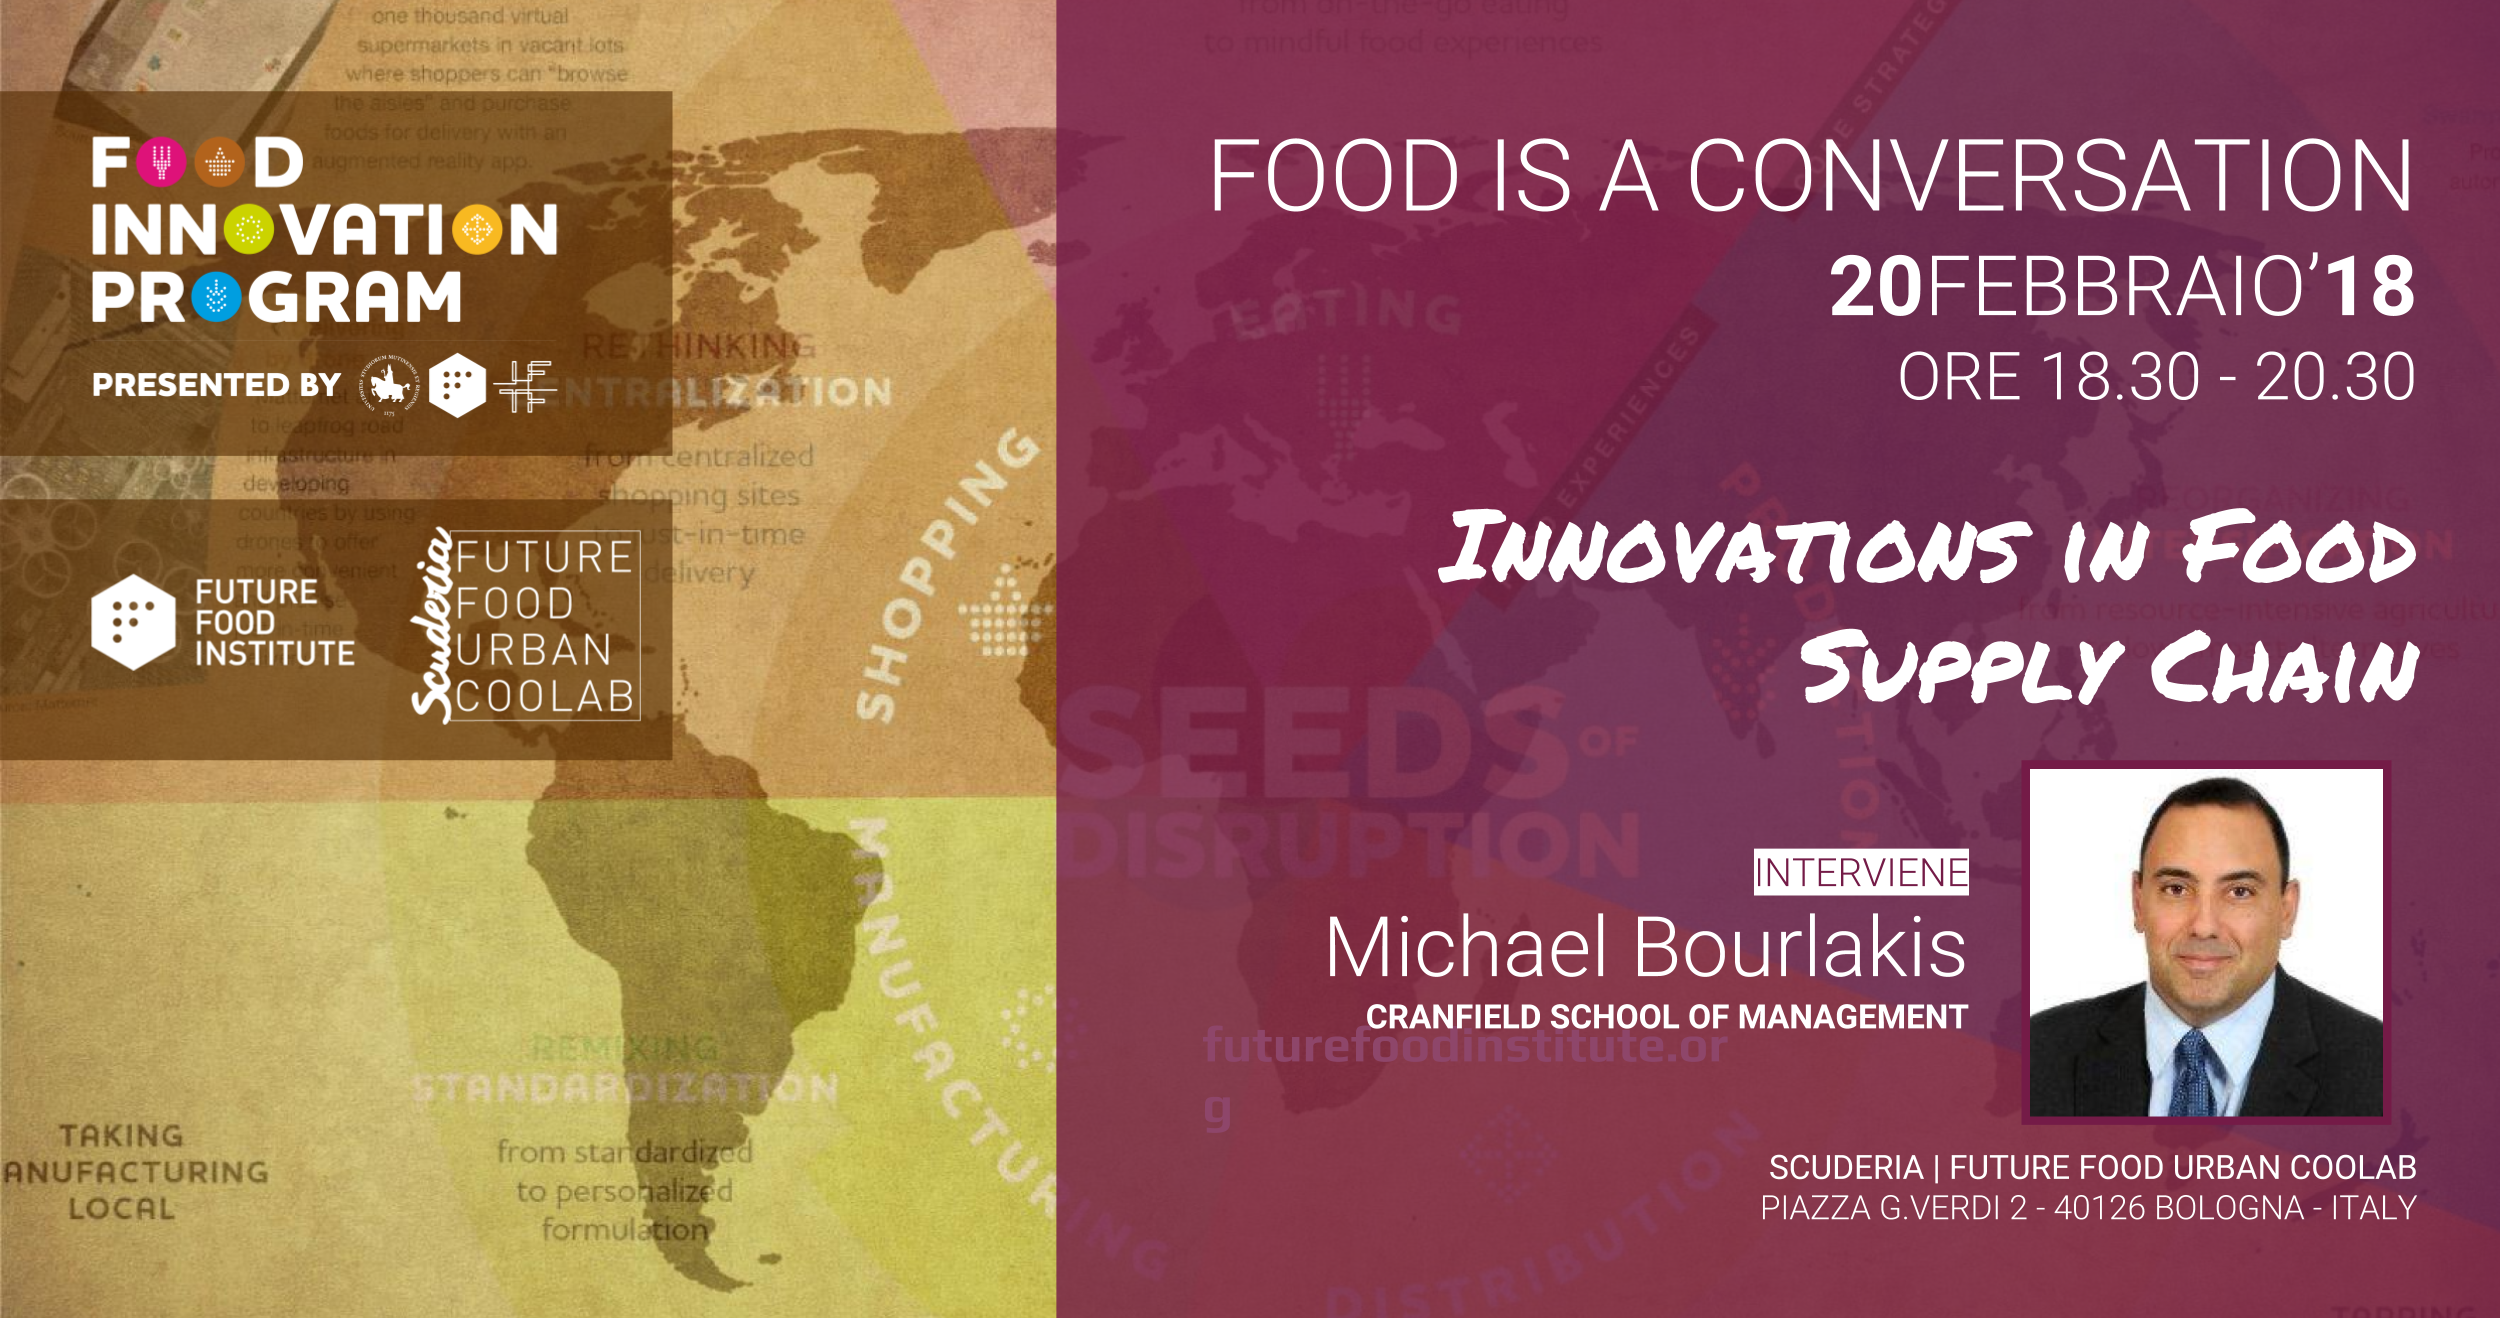 FOOD IS A CONVERSATION con Michael Bourlakis